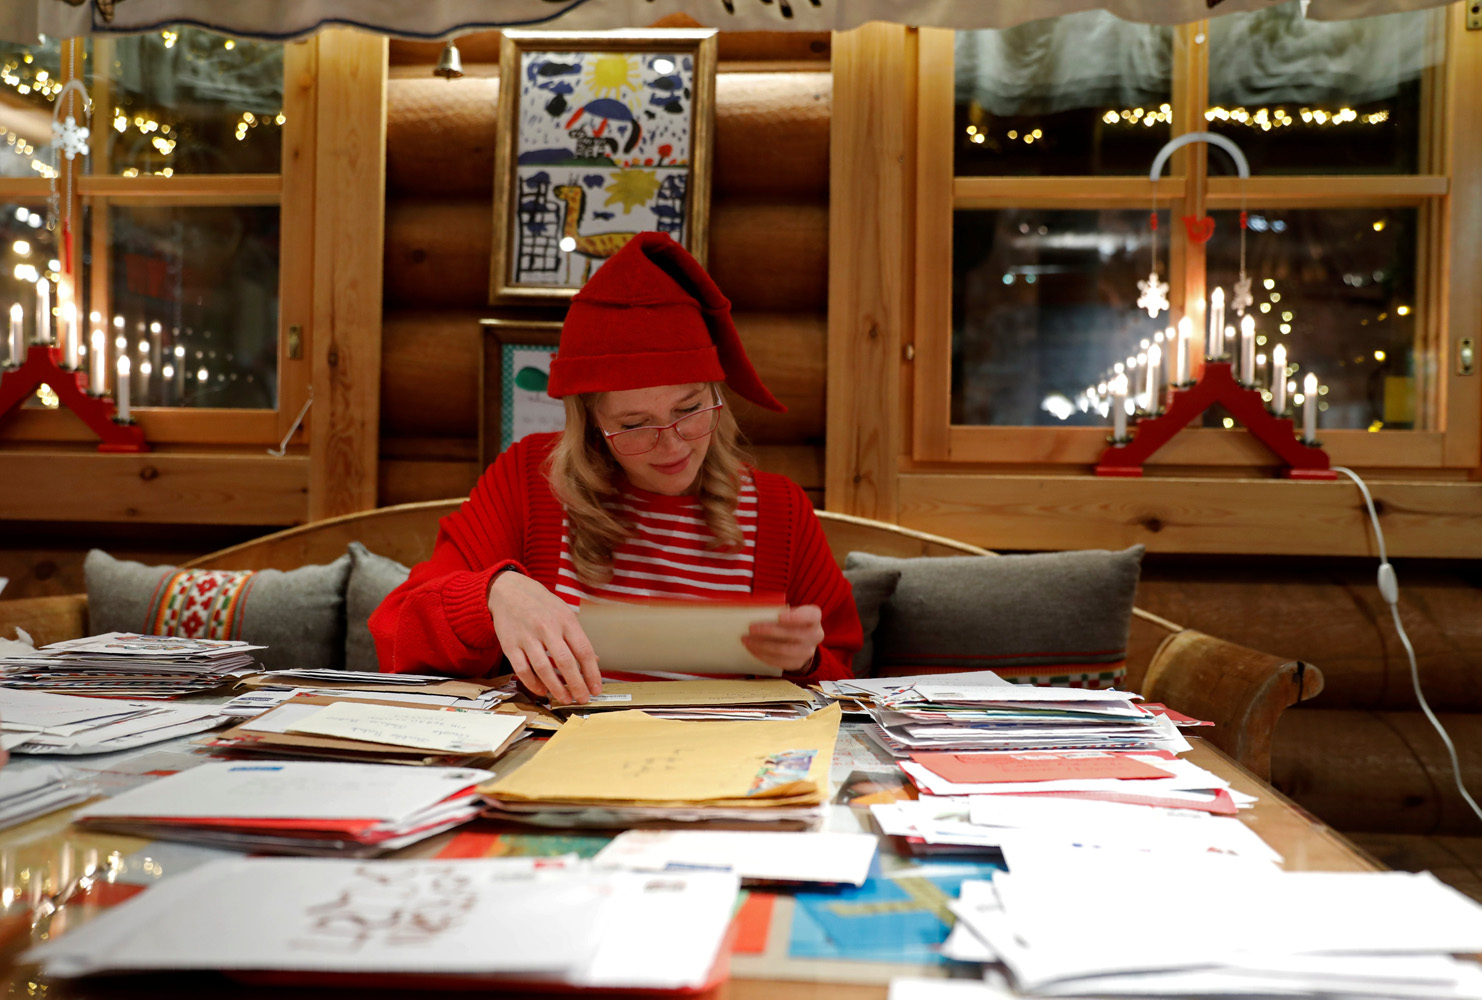 "Elina, dressed as a Christmas elf, reads letters from around the world which were sent to Santa Claus at the Santa Claus' Post Office, in the Arctic Circle near Rovaniemi, Finland December 15, 2016. REUTERS/Pawel Kopczynski SEARCH ""KOPCZYNSKI SANTA"" FOR THIS STORY. SEARCH ""THE WIDER IMAGE"" FOR ALL STORIES"